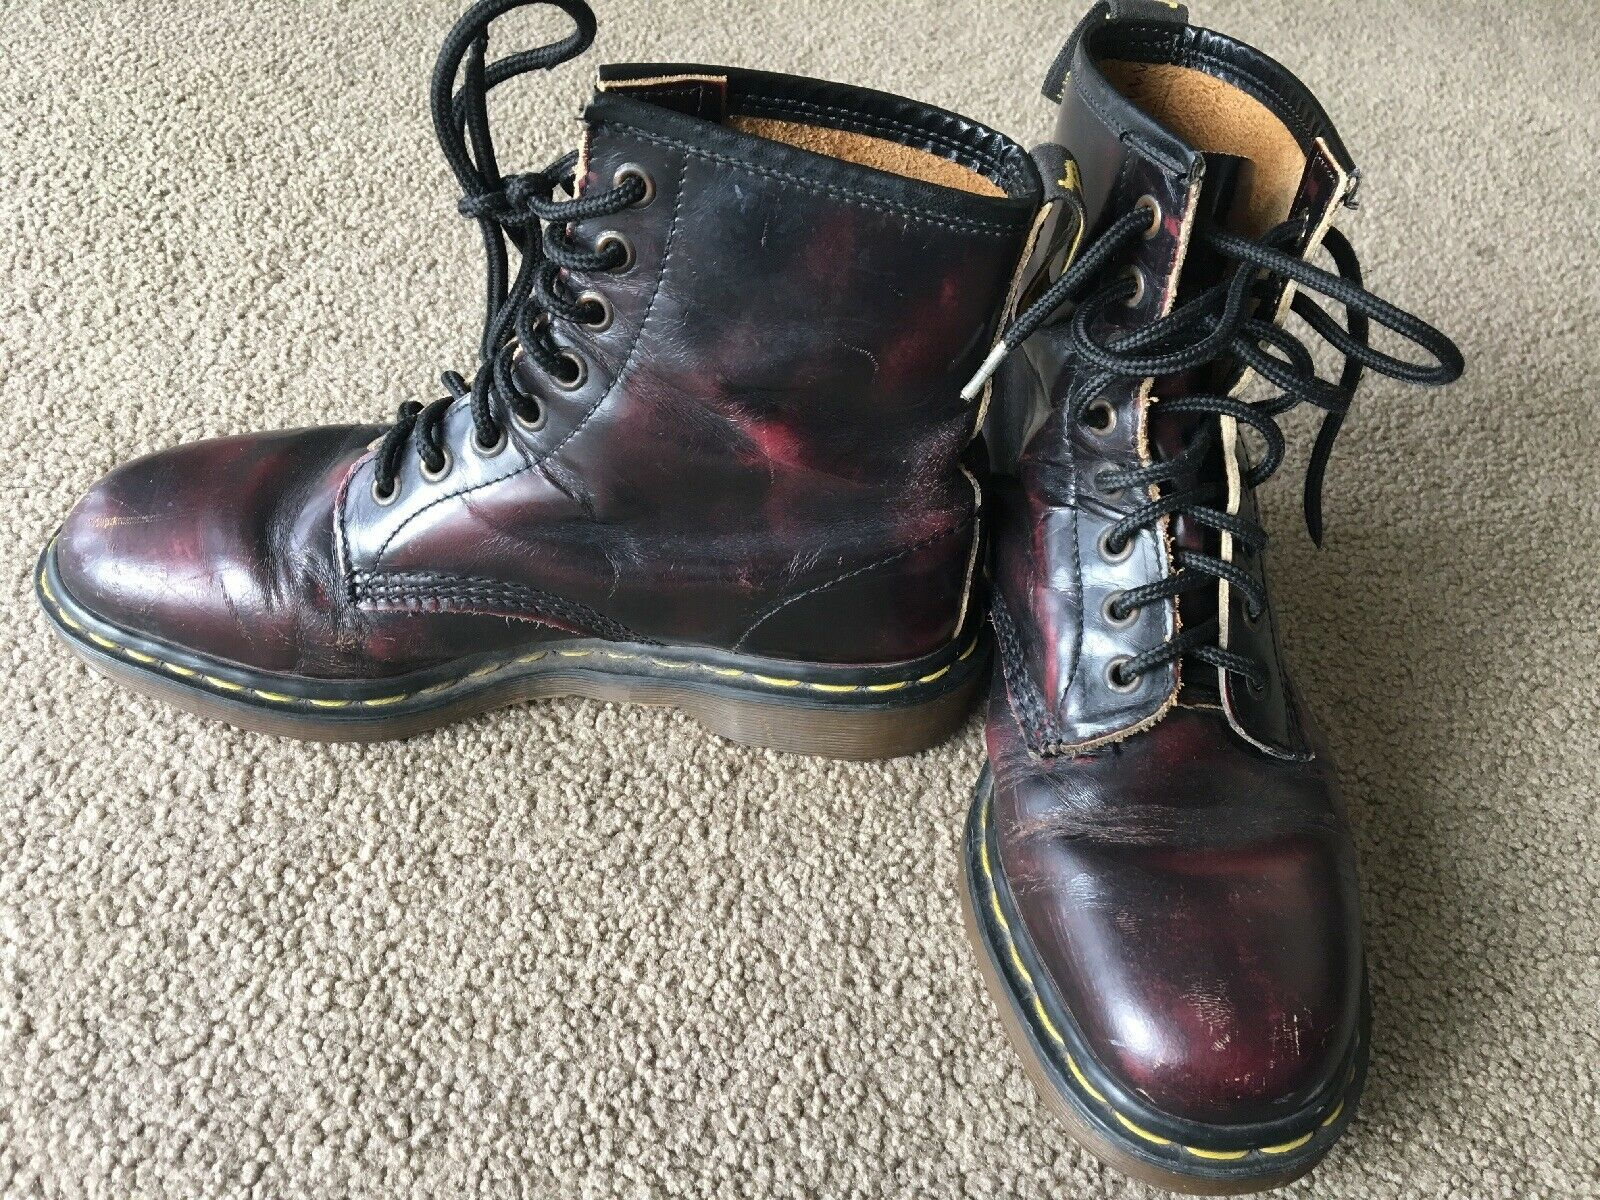 Primary image for Dr. Marten's Boots 1460 Size 7 Pascal CHERRY RED ANTIQUE TEMPERLEY 8 eye England